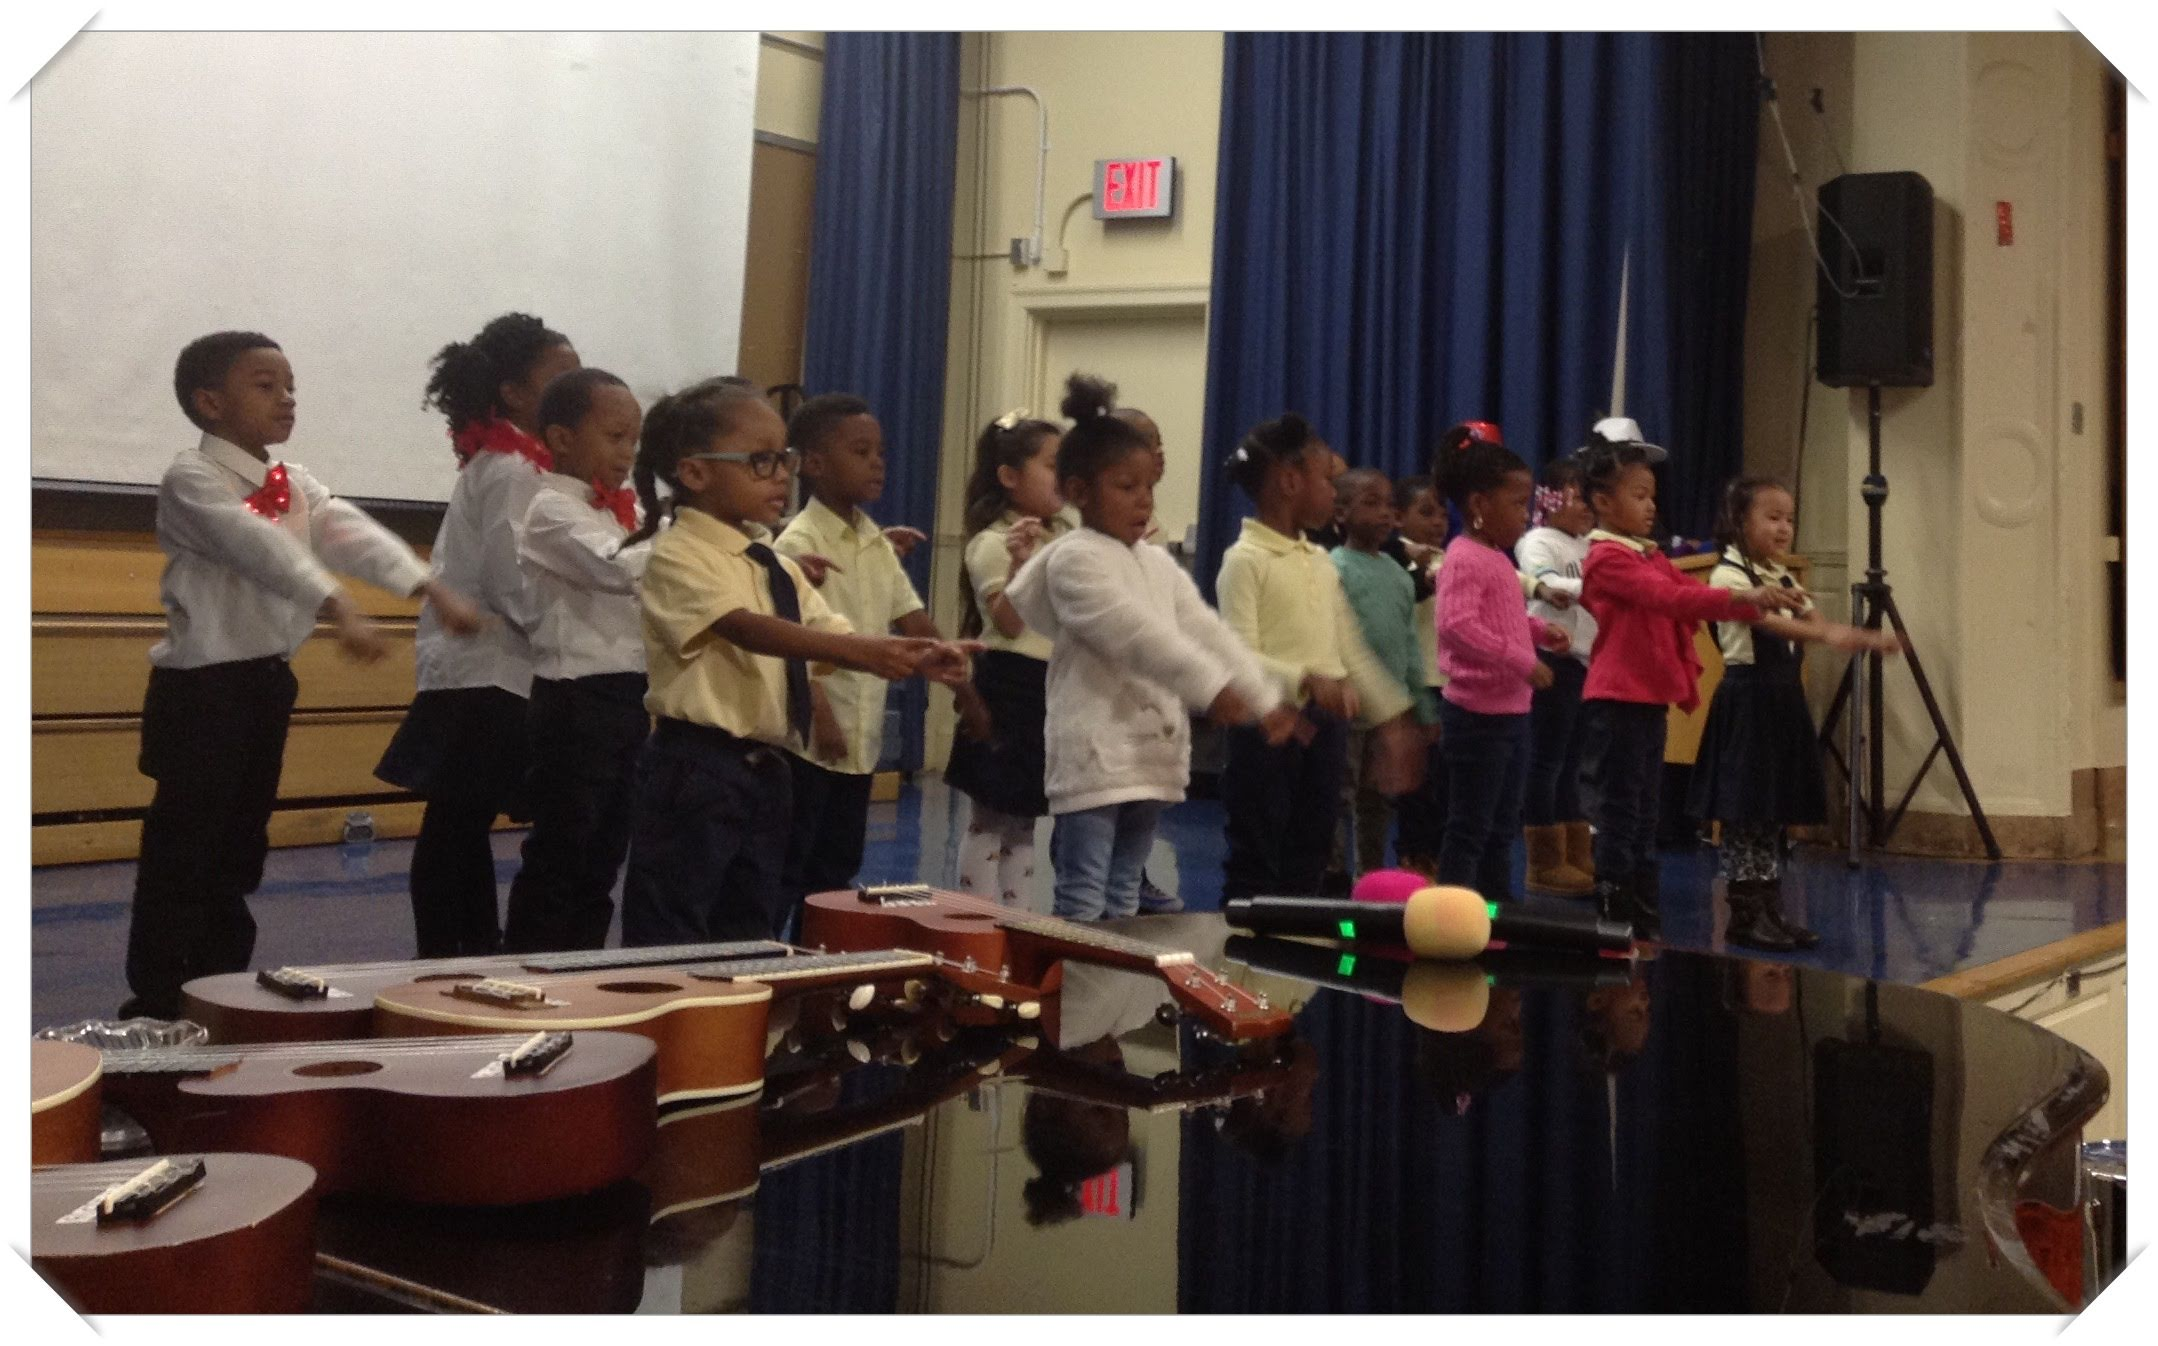 Kindergartners rehearse on stage